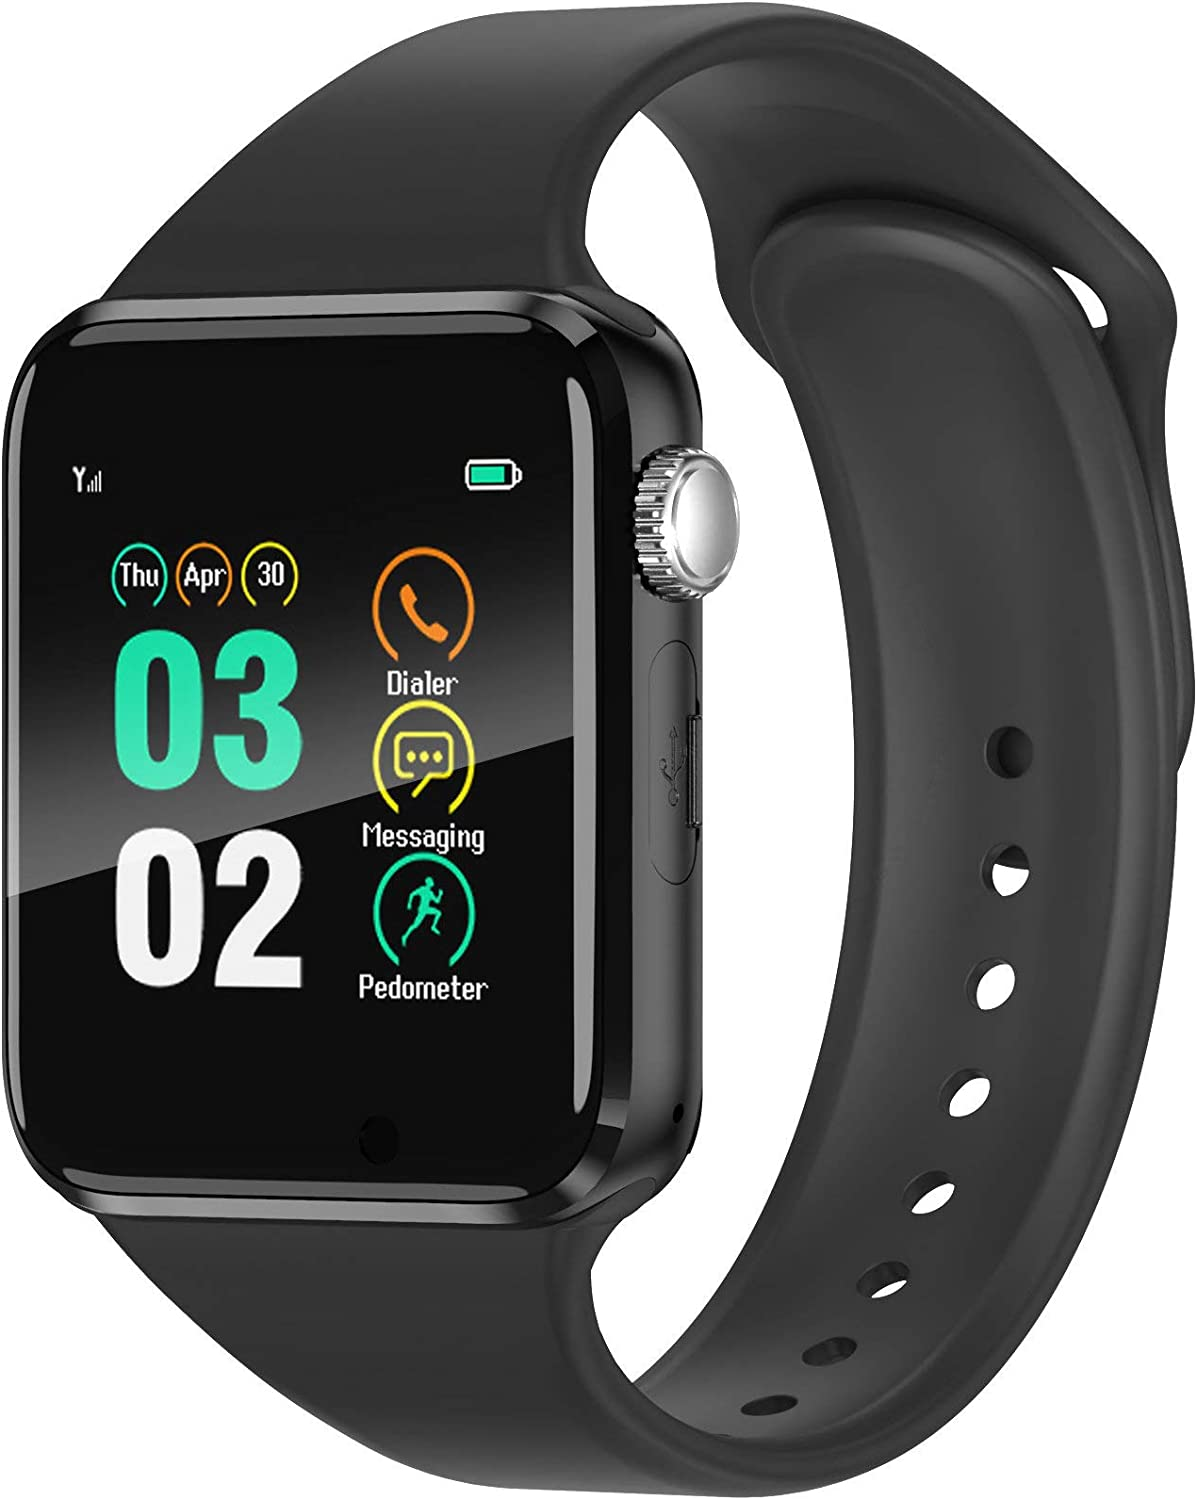 WJPILIS Smart Watch Touchscreen Bluetooth Smartwatch Wrist Watch Sports Fitness Tracker with SIM SD Card Slot Camera Pedometer Compatible iPhone iOS Samsung Android for Men Women (Black1)